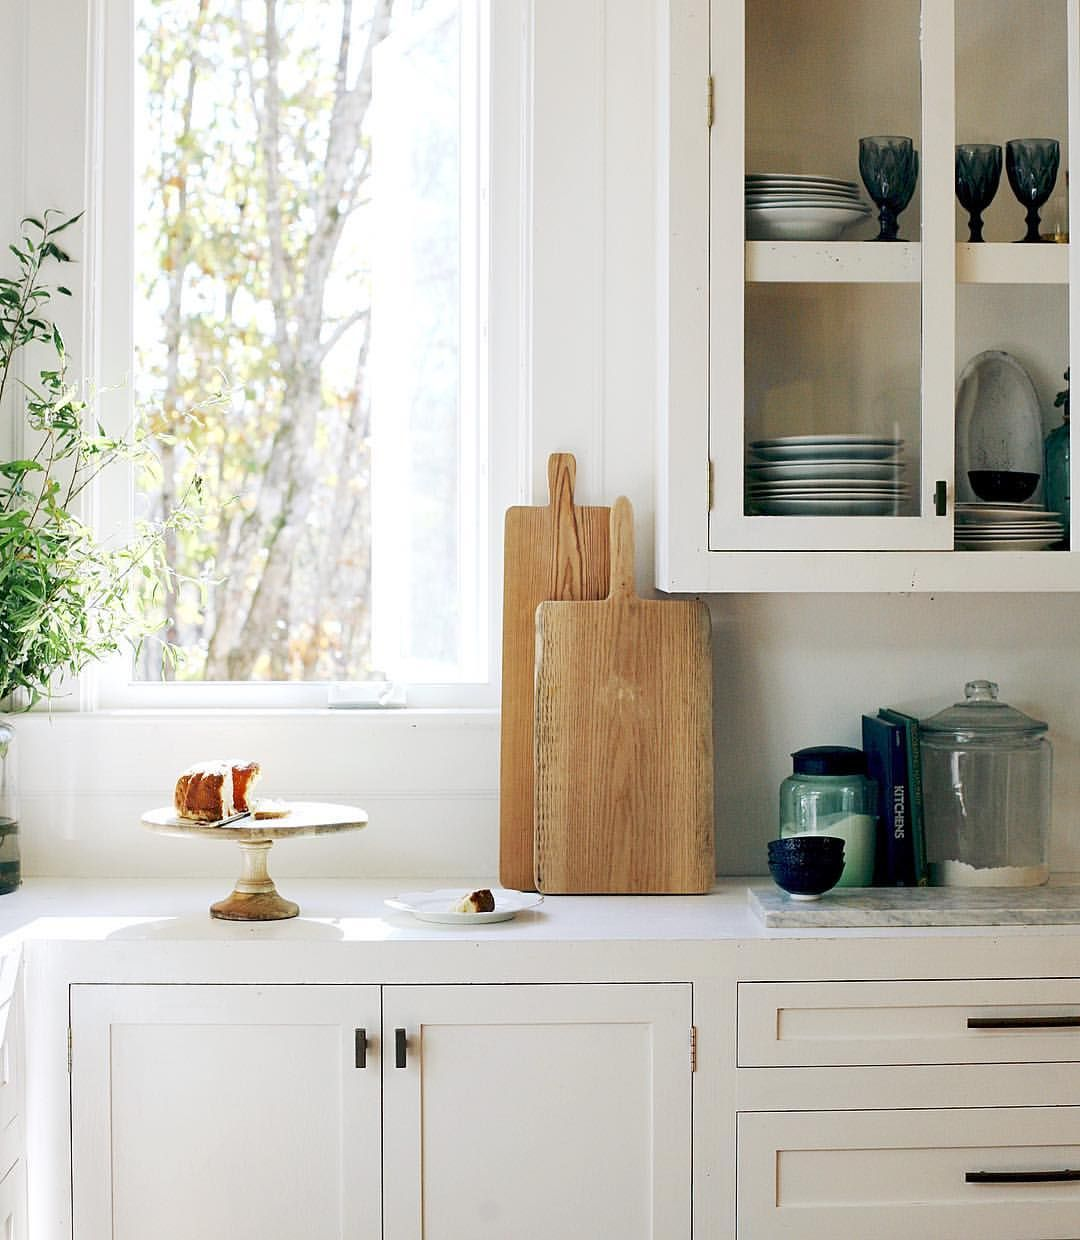 Ideas For Redoing Kitchen Cupboards: College Housewife On Kitchen